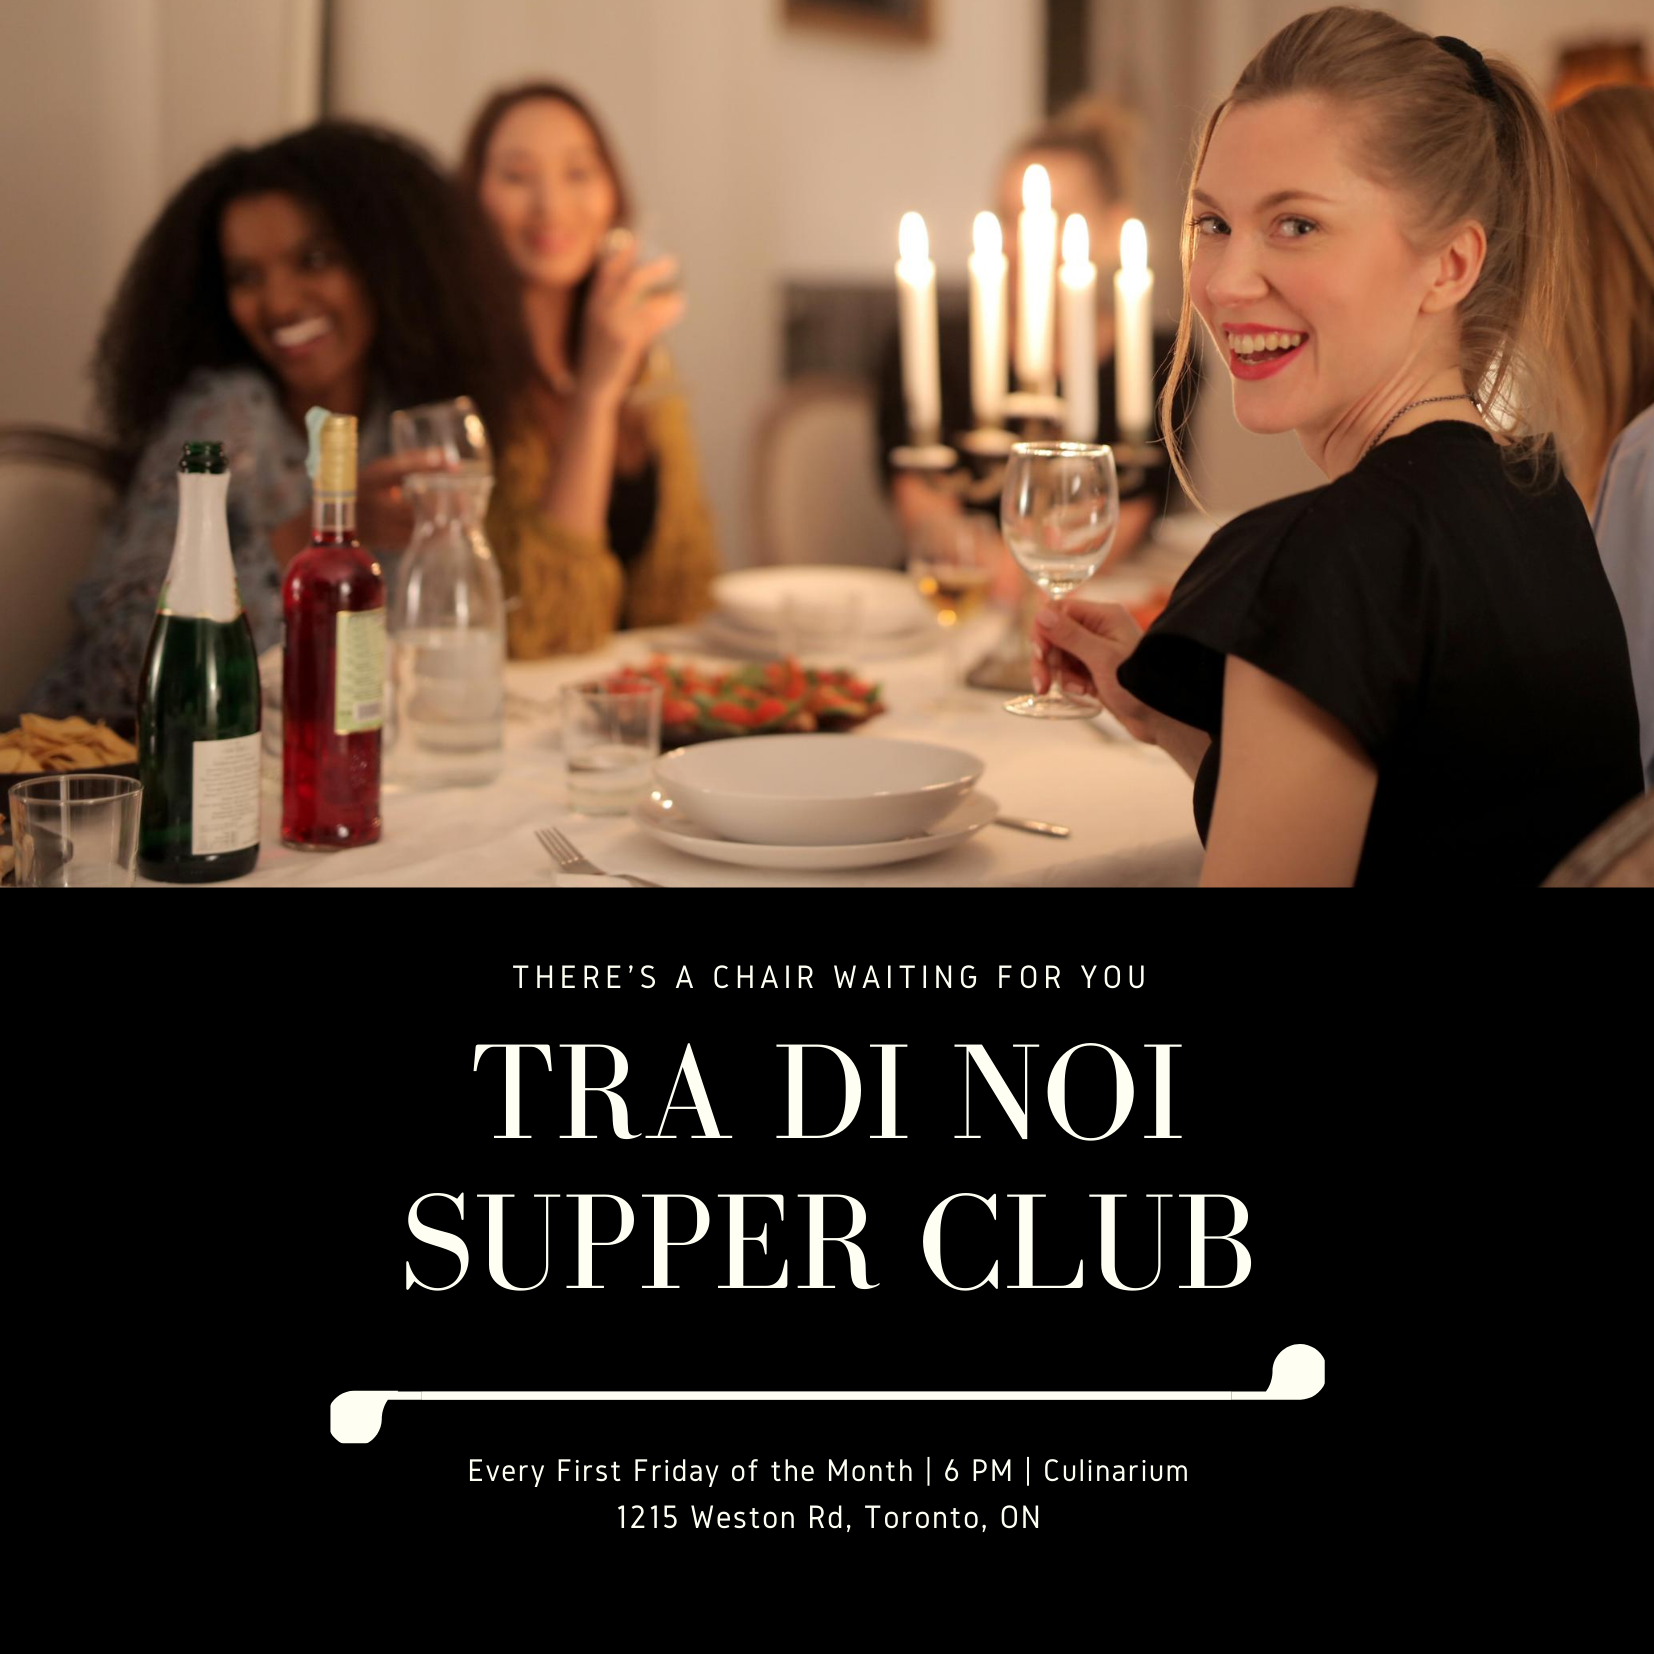 tra di noi supper club